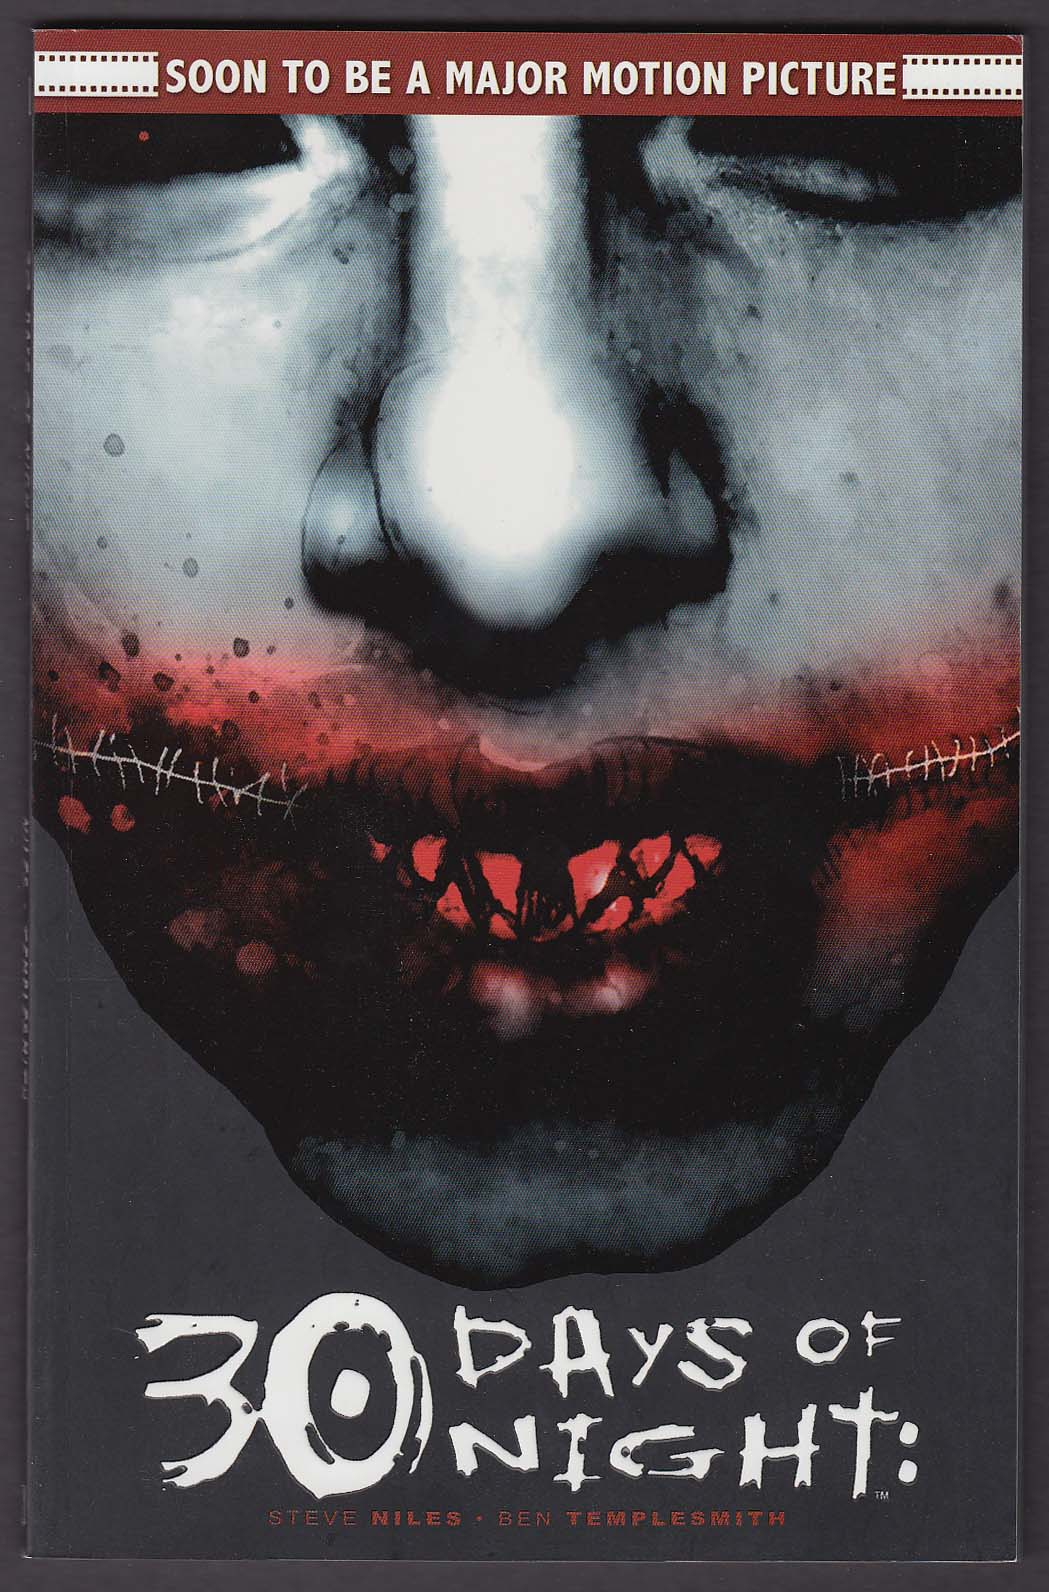 Image for 30 Days of Night #1 IDW graphic novel comic book 7th printing 2007